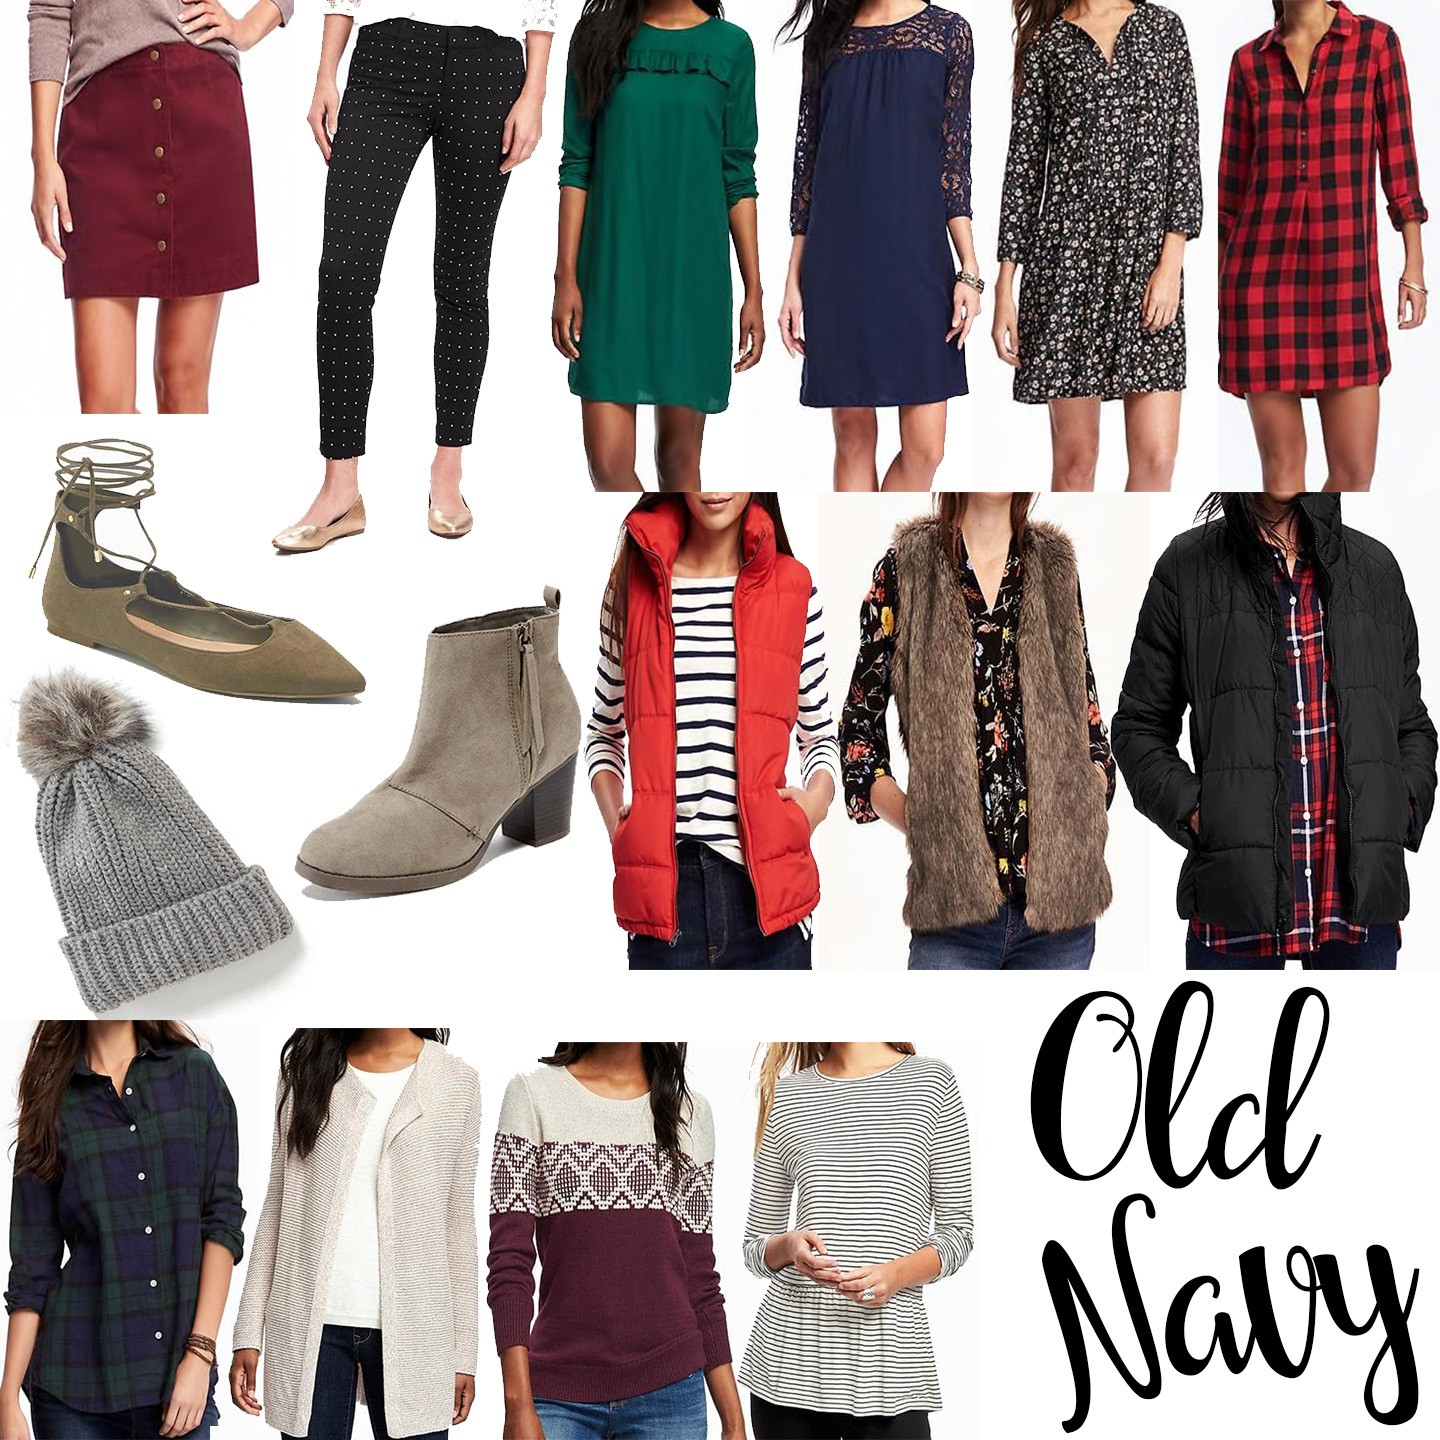 2016 Black Friday Guide by Washington DC fashion blogger Styled Blonde